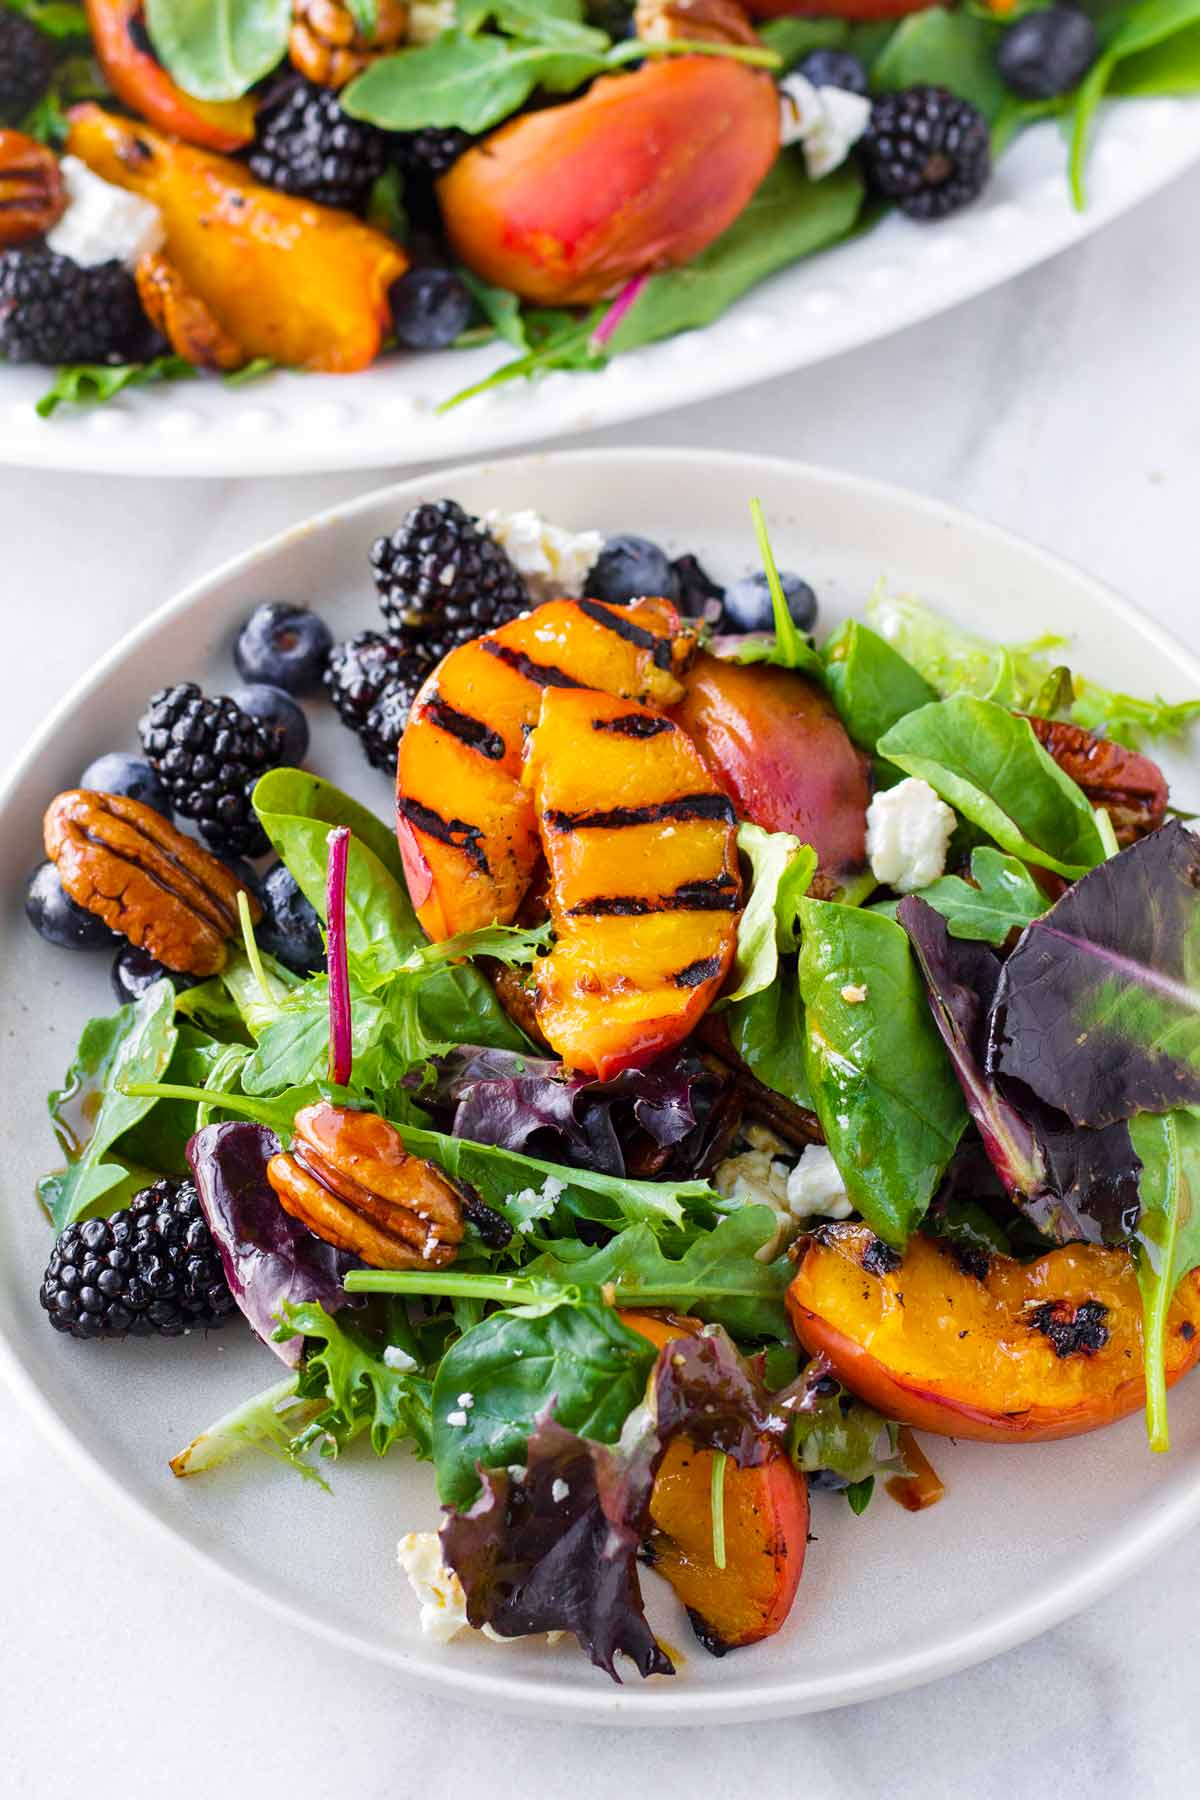 grilled peach salad with berries, mixed greens, pecans, and feta